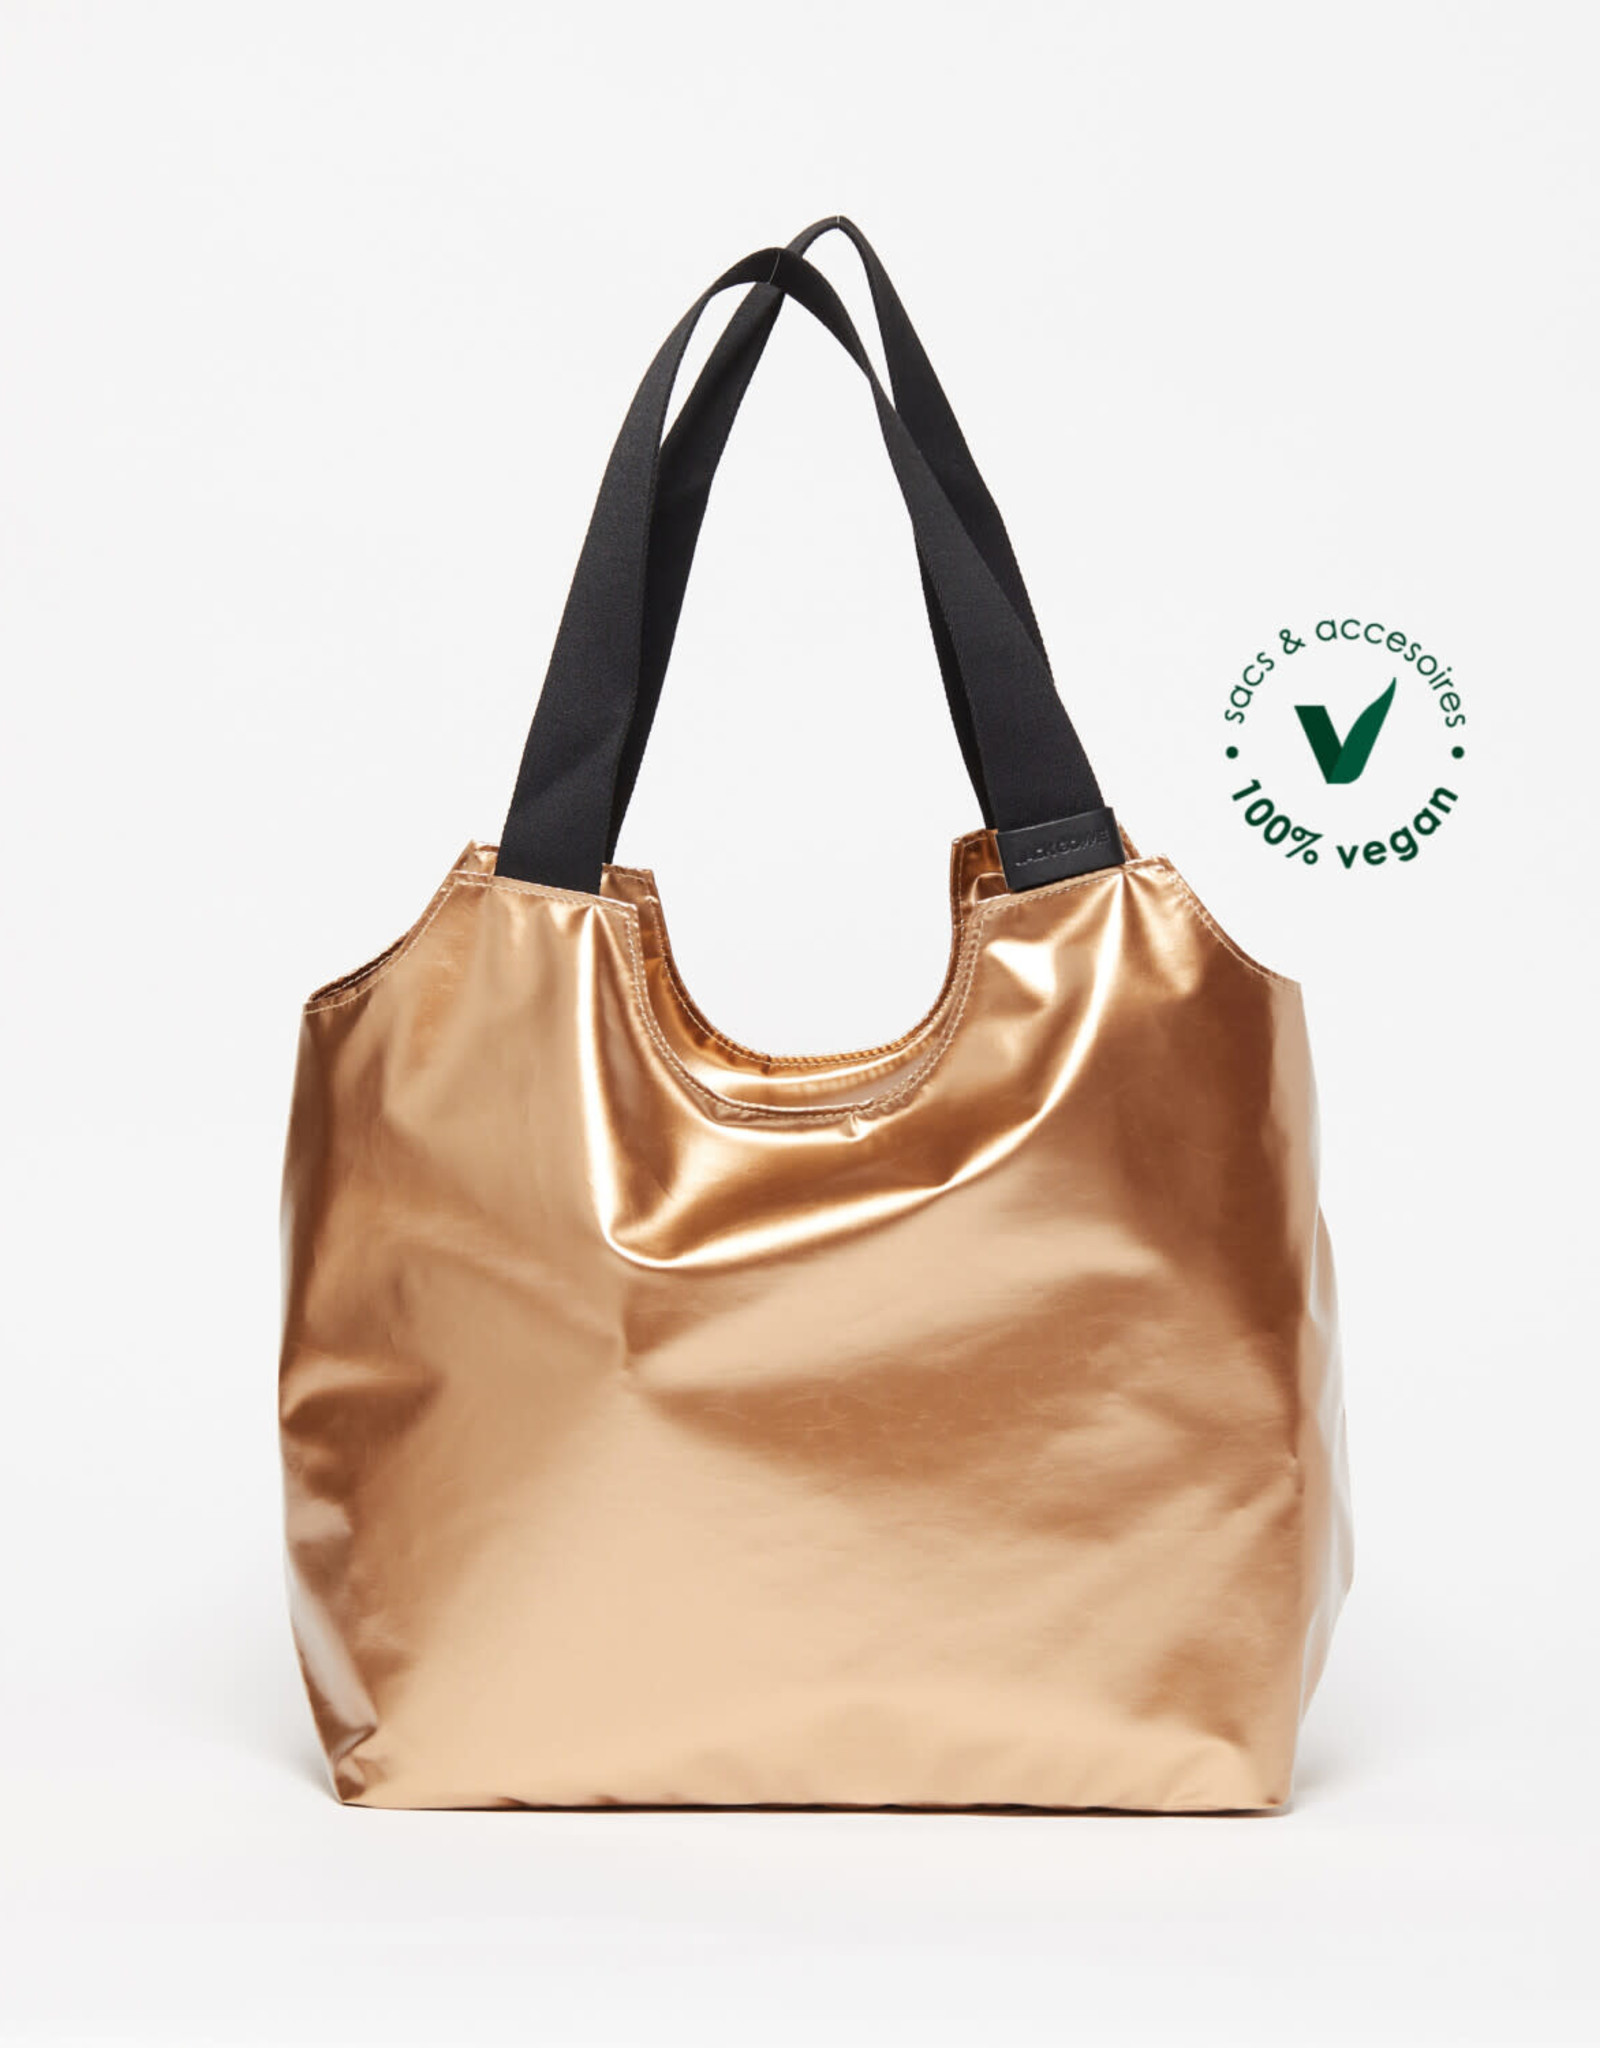 JACK GOMME Thelma Tote